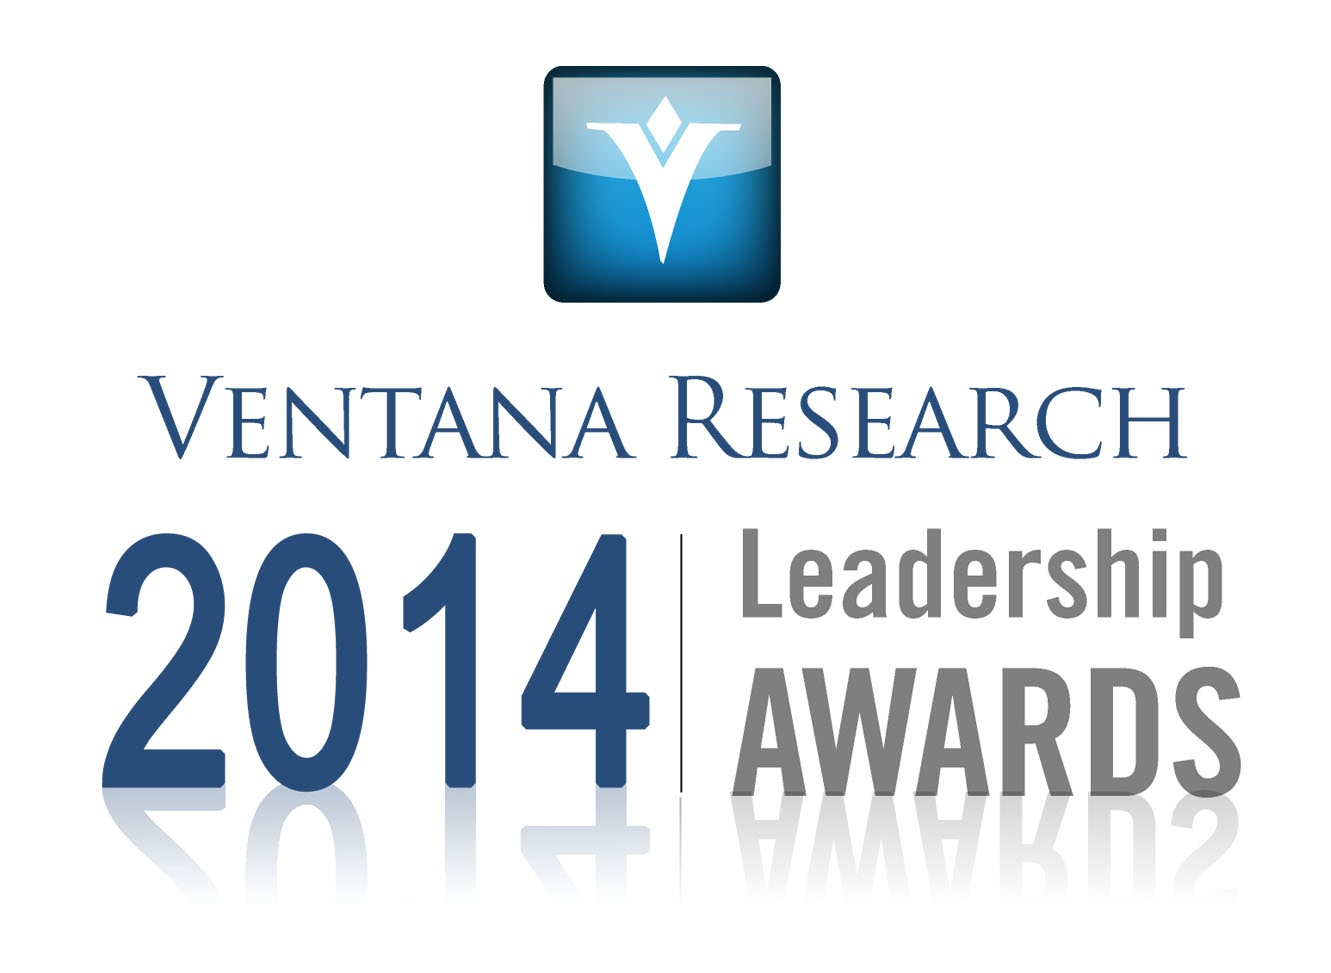 Ventana_Research_2014_Leadership_Award1.jpg